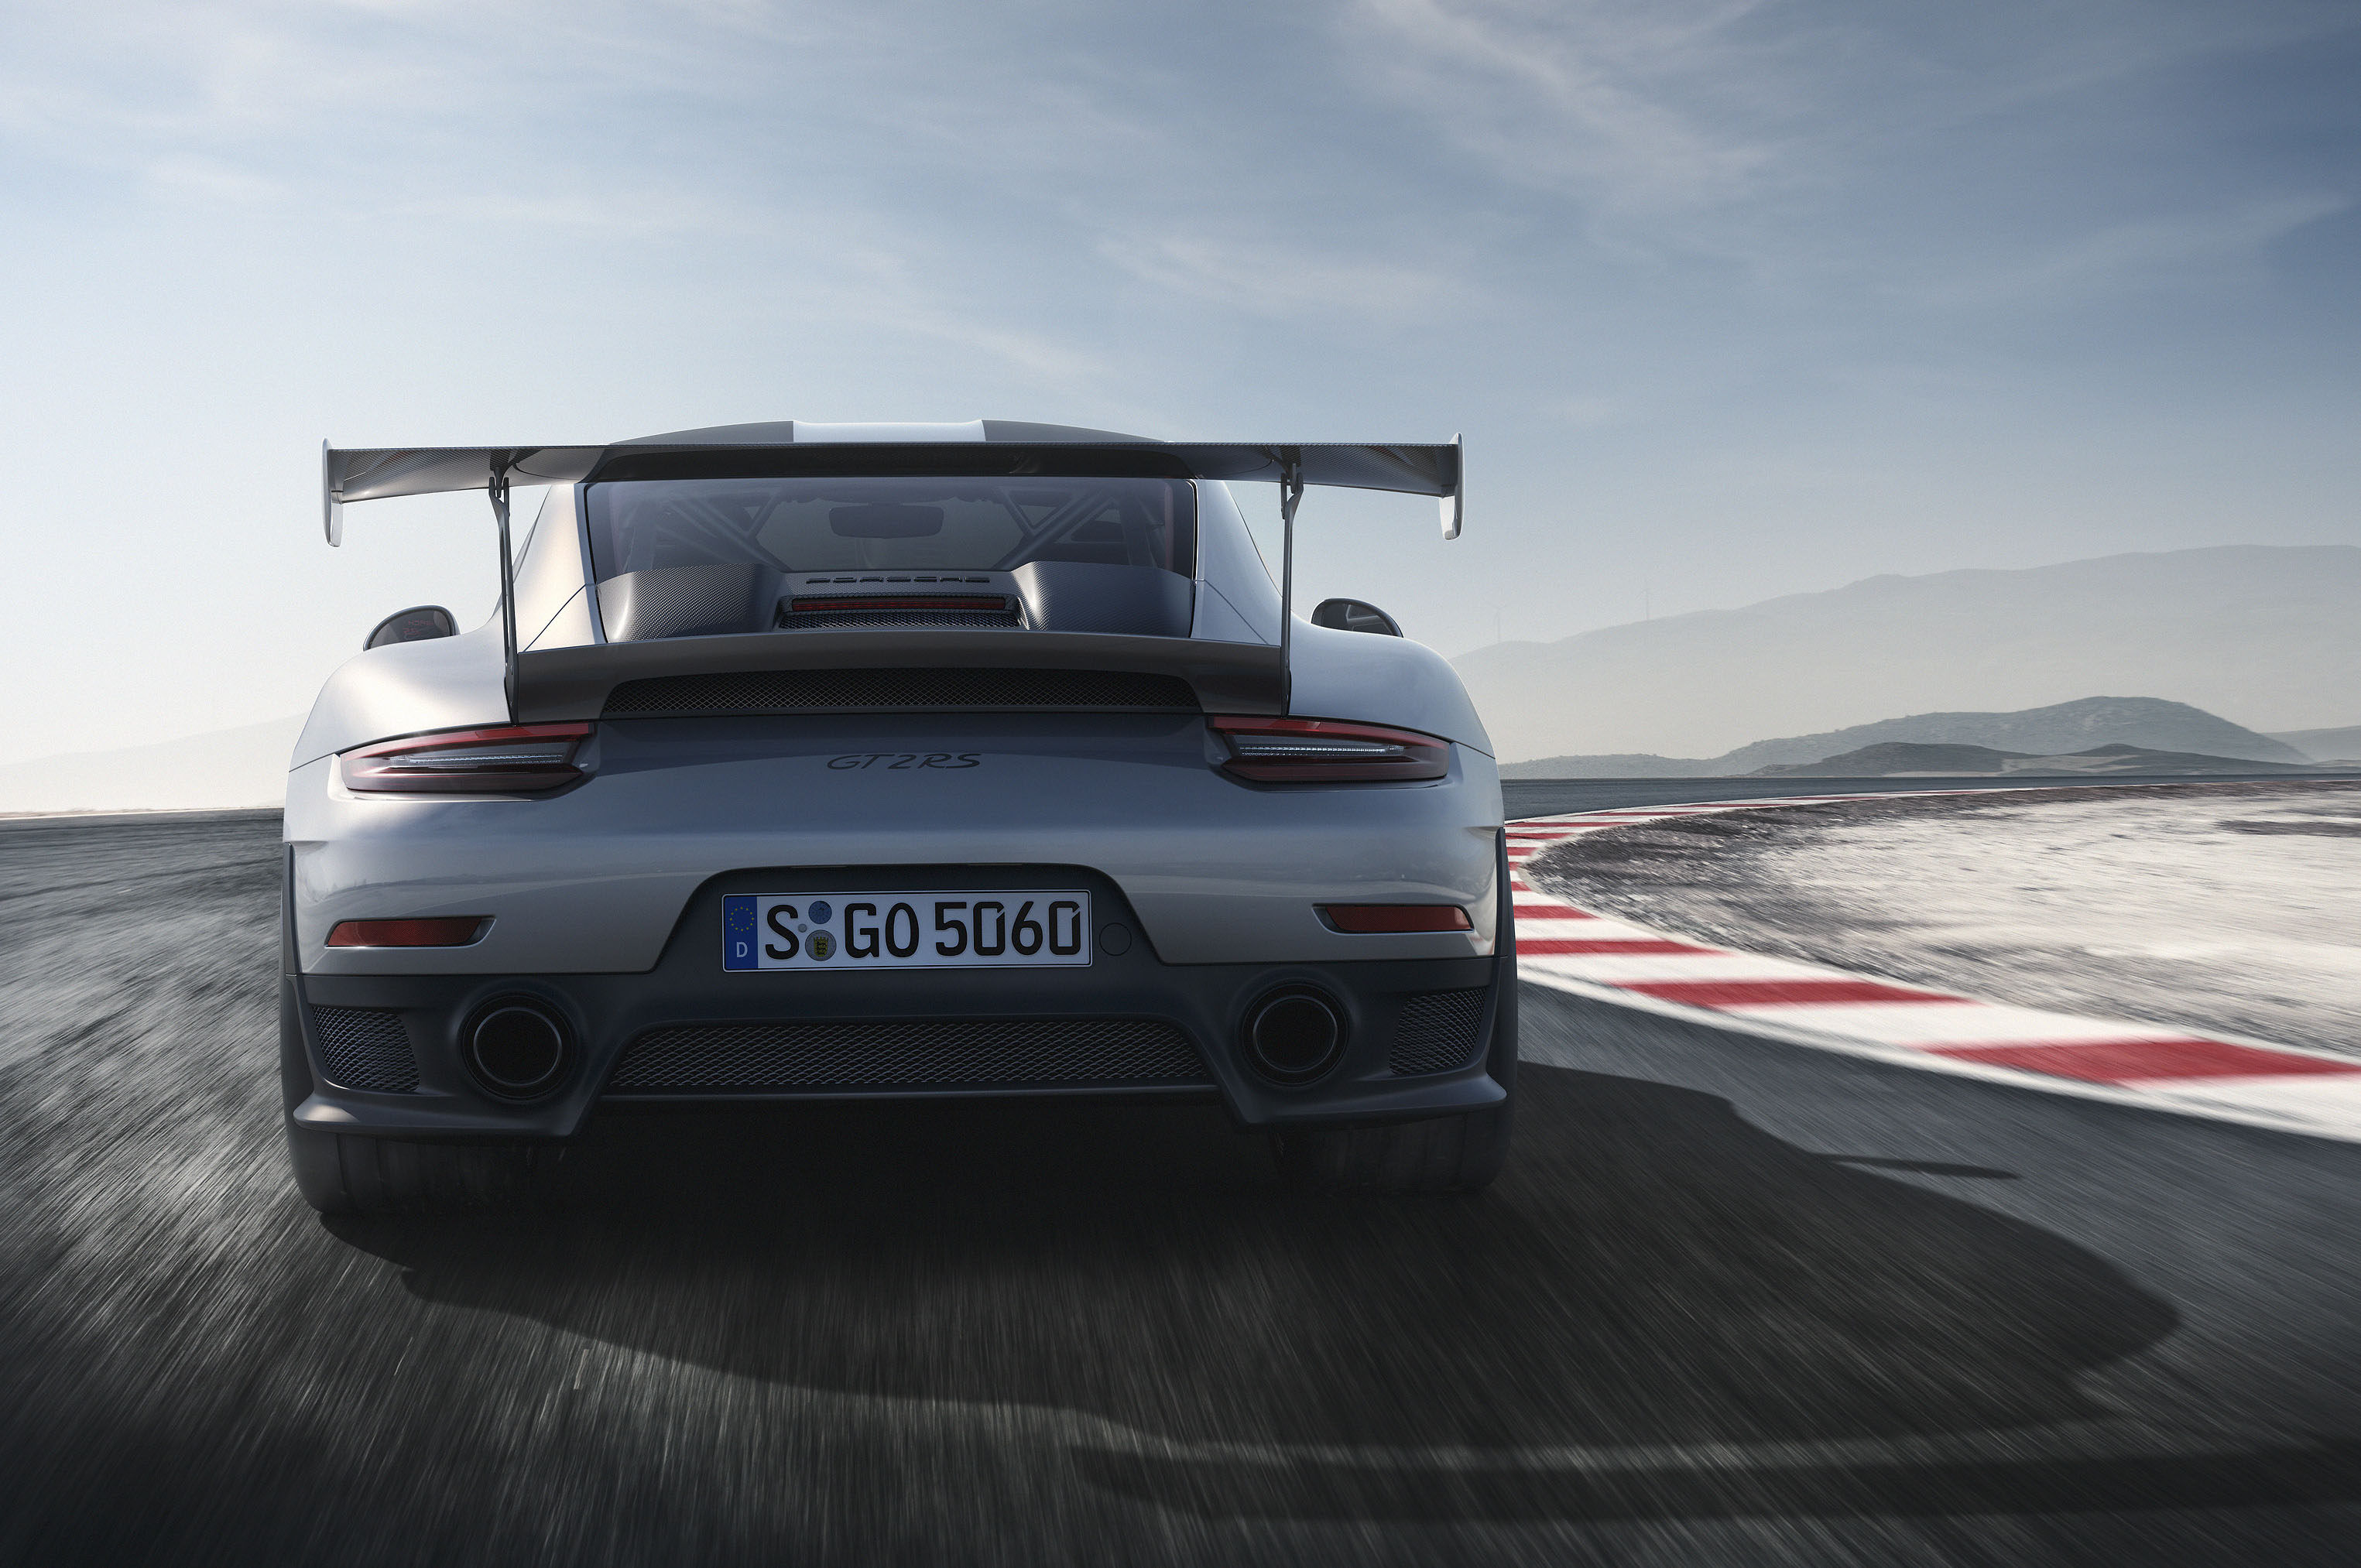 2018-Porsche-911-GT2-RS-rear-view-look Interesting Porsche 911 Gt2 and Gt3 Cars Trend